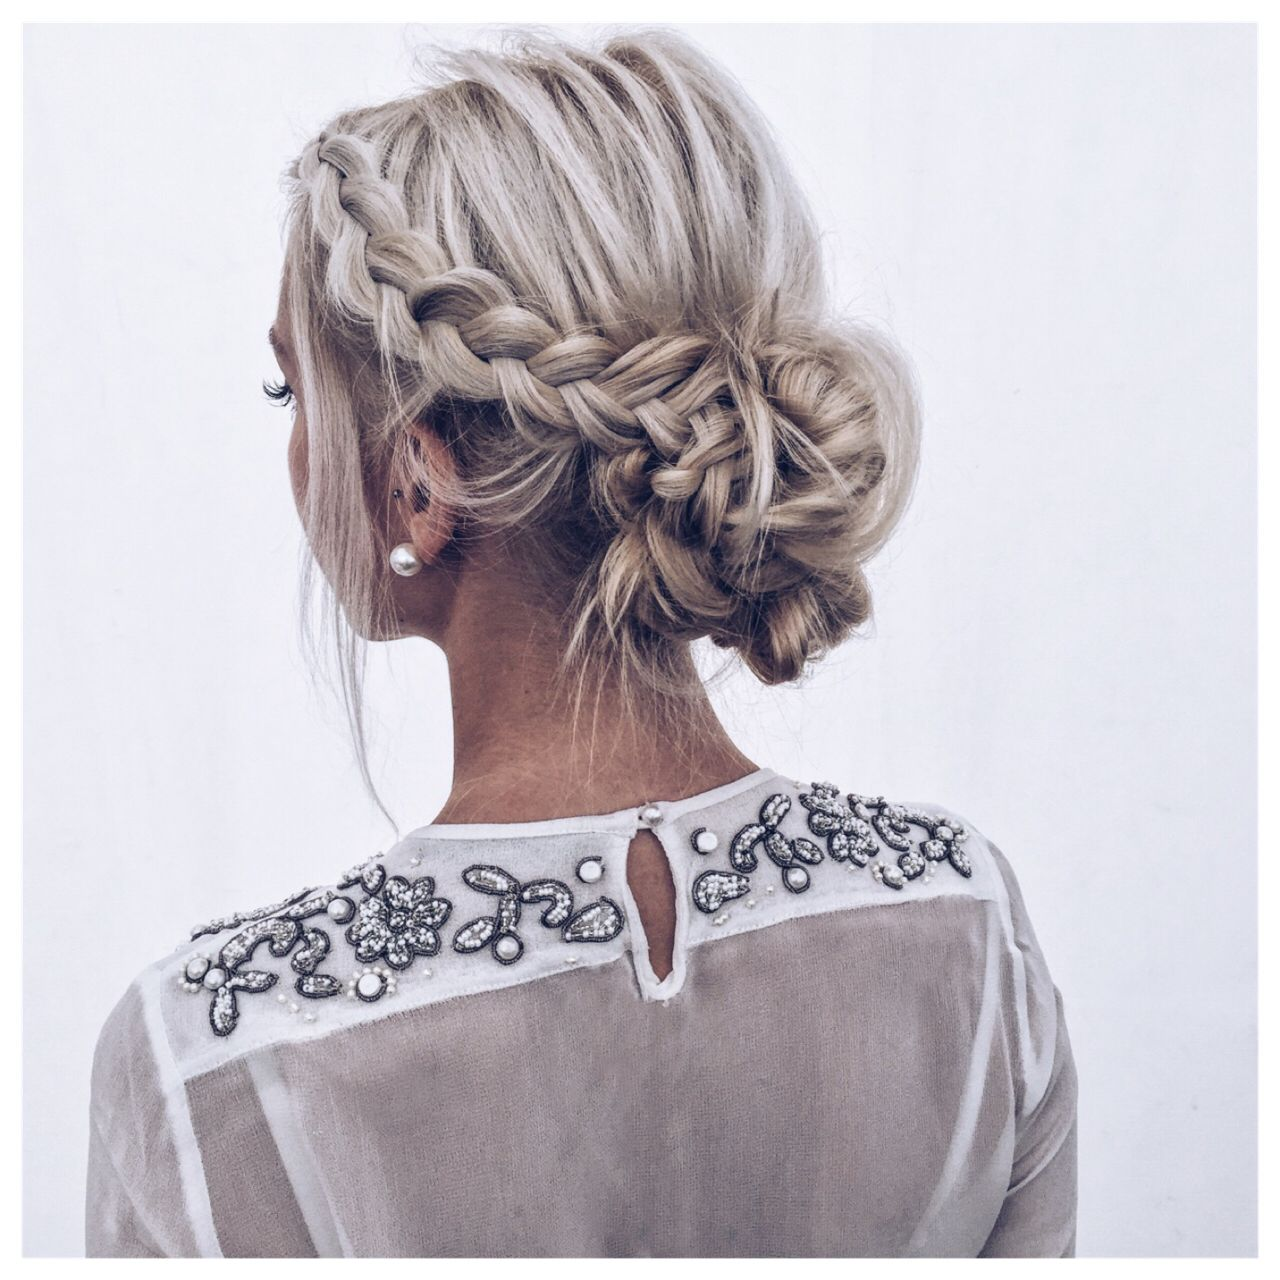 Hair style coiffure chignon , blonde , tresses, mariage